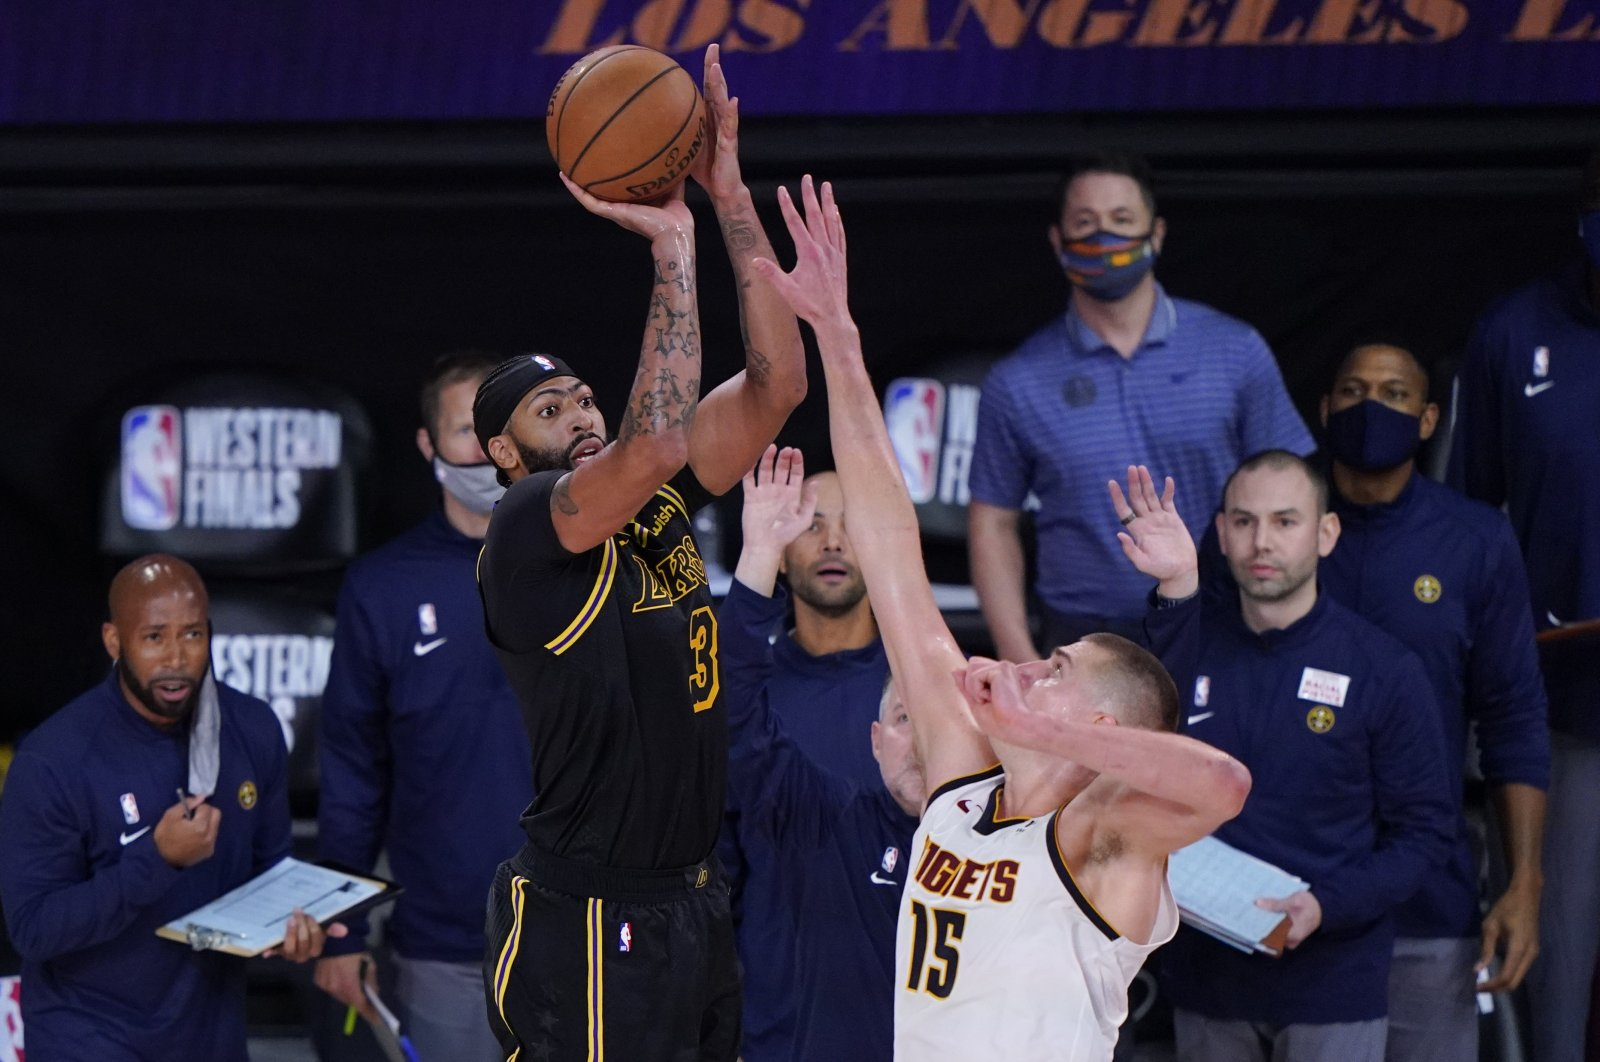 Los Angeles Lakers' Anthony Davis shoots a 3-point basket over Denver Nuggets' Nikola Jokic at the end of an NBA playoff game in Lake Buena Vista, Florida, Sept. 20, 2020. (AP Photo)